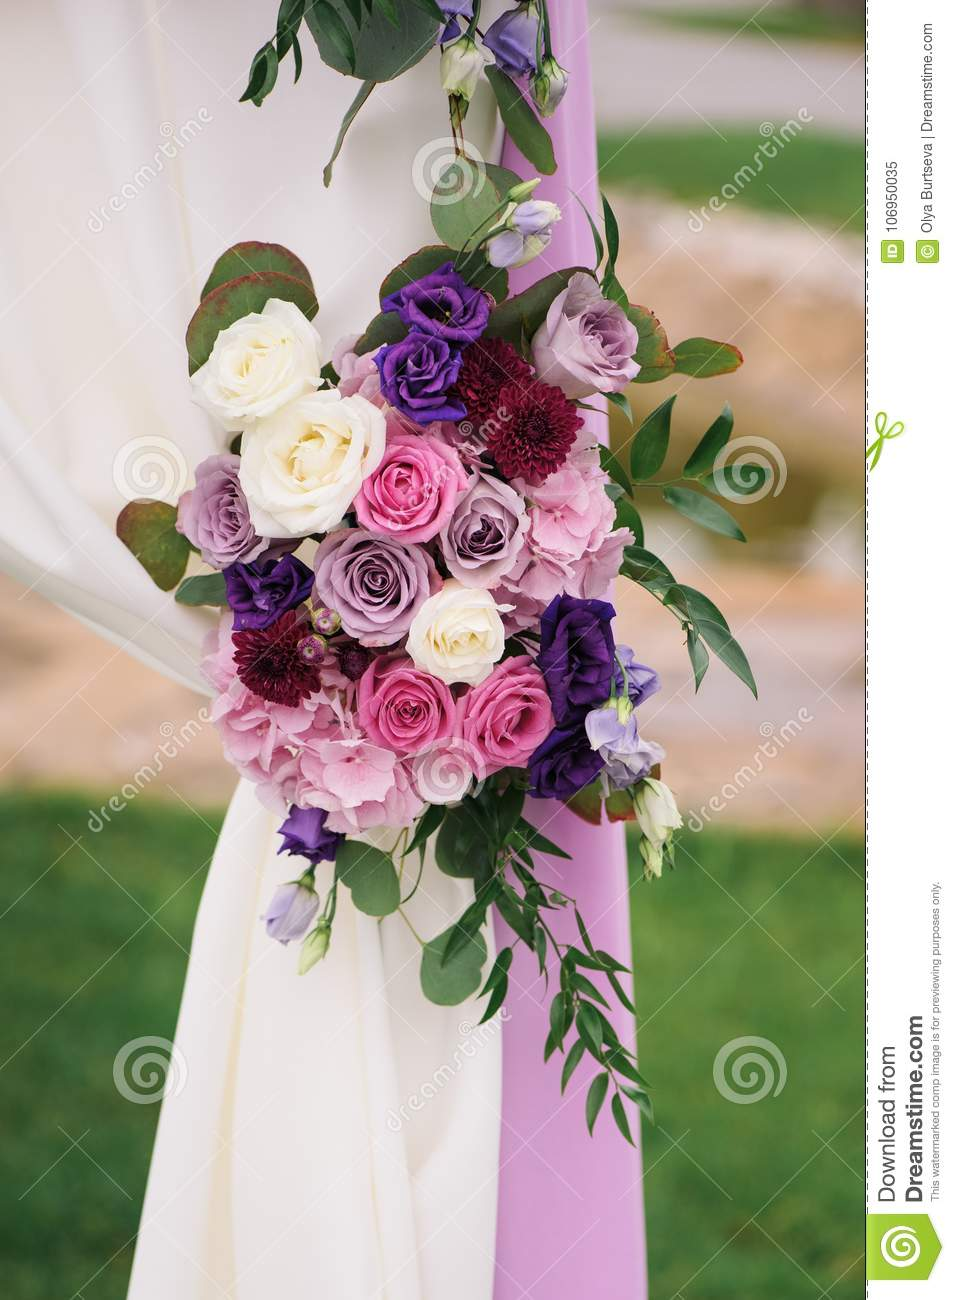 Arch element with flowers for wedding decorations stock image download arch element with flowers for wedding decorations stock image image of closeup beauty junglespirit Choice Image